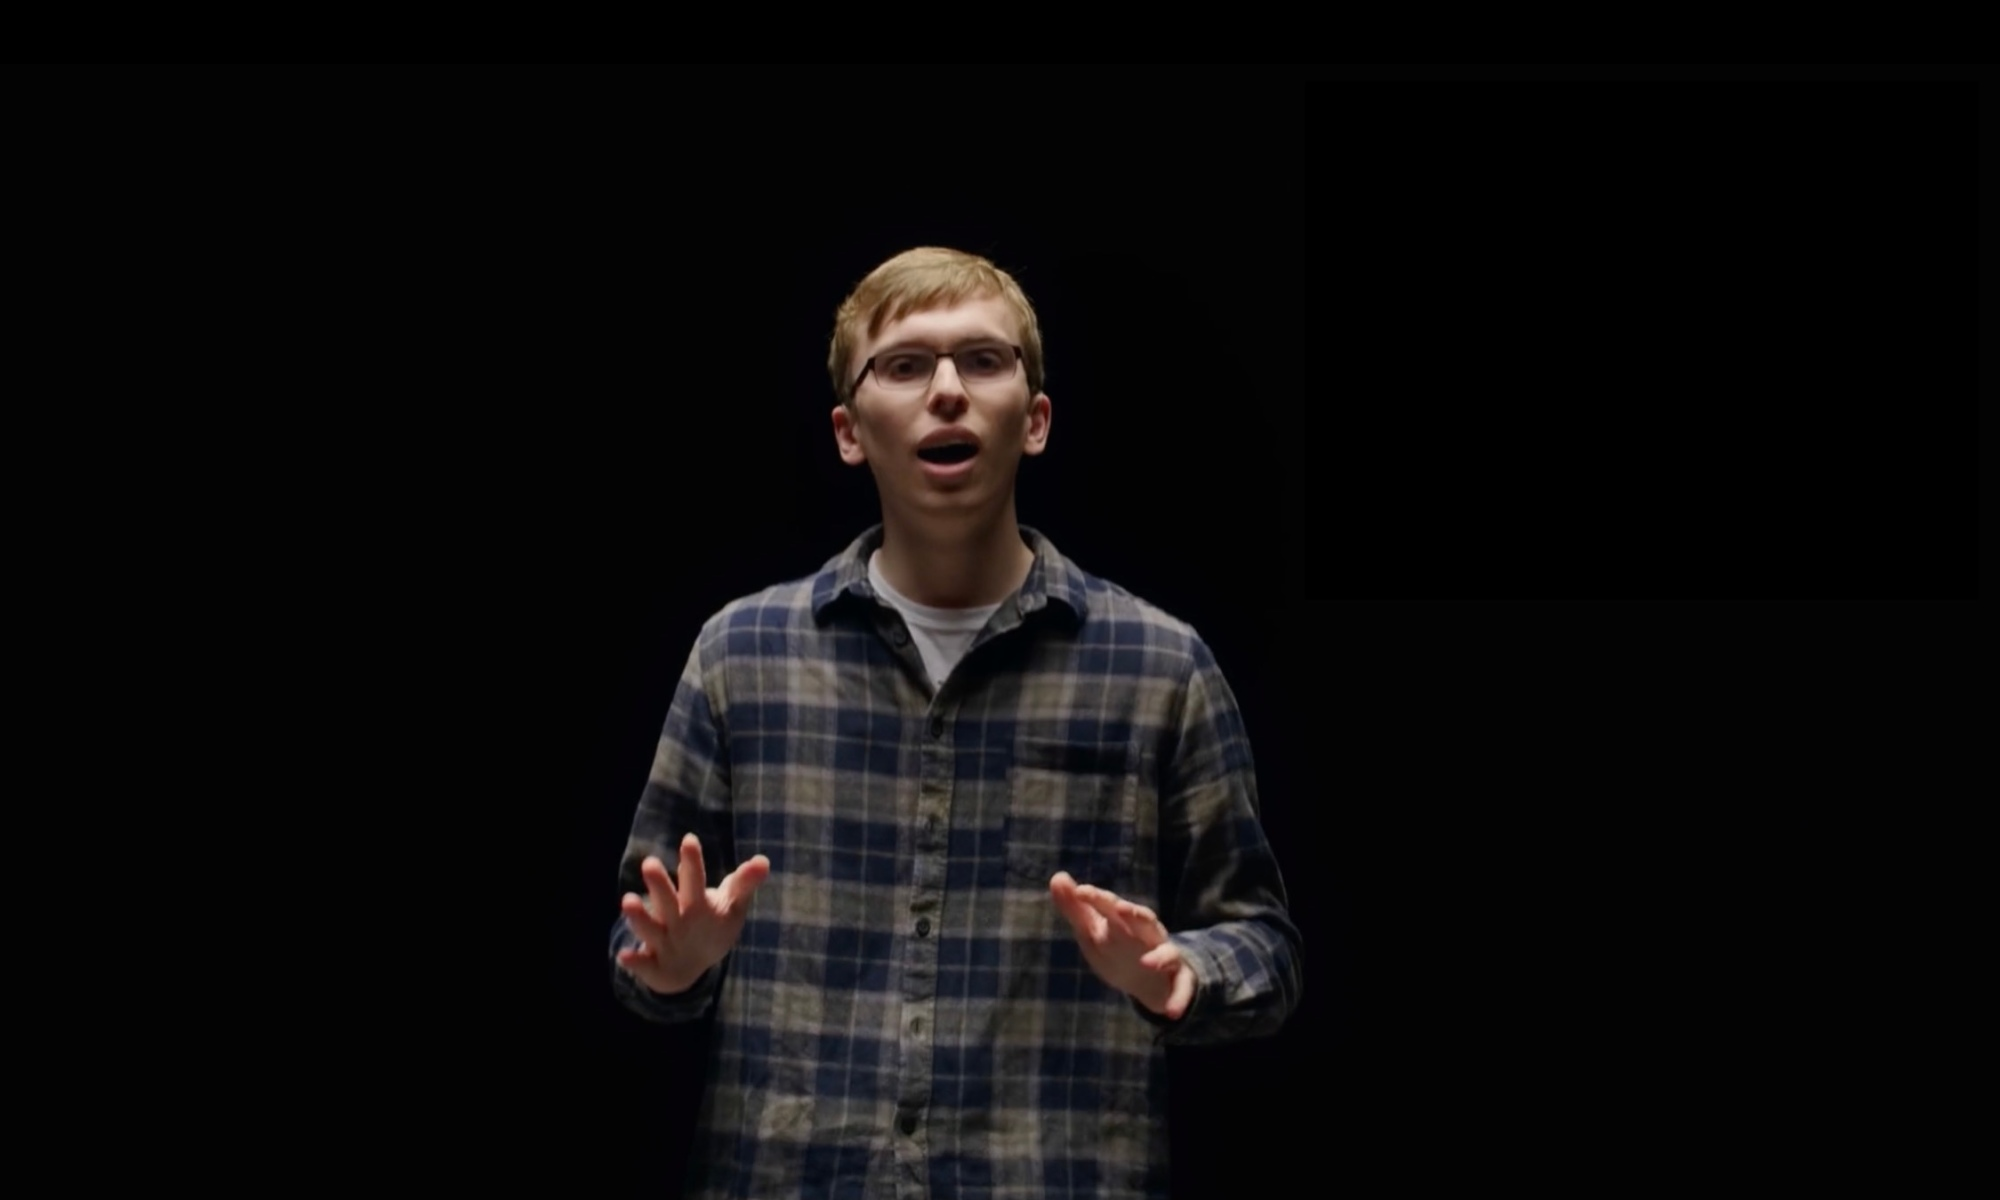 Liam wears a green and blue checkered shirt, and stands against a black background. He has his arms outstretched in front of him.